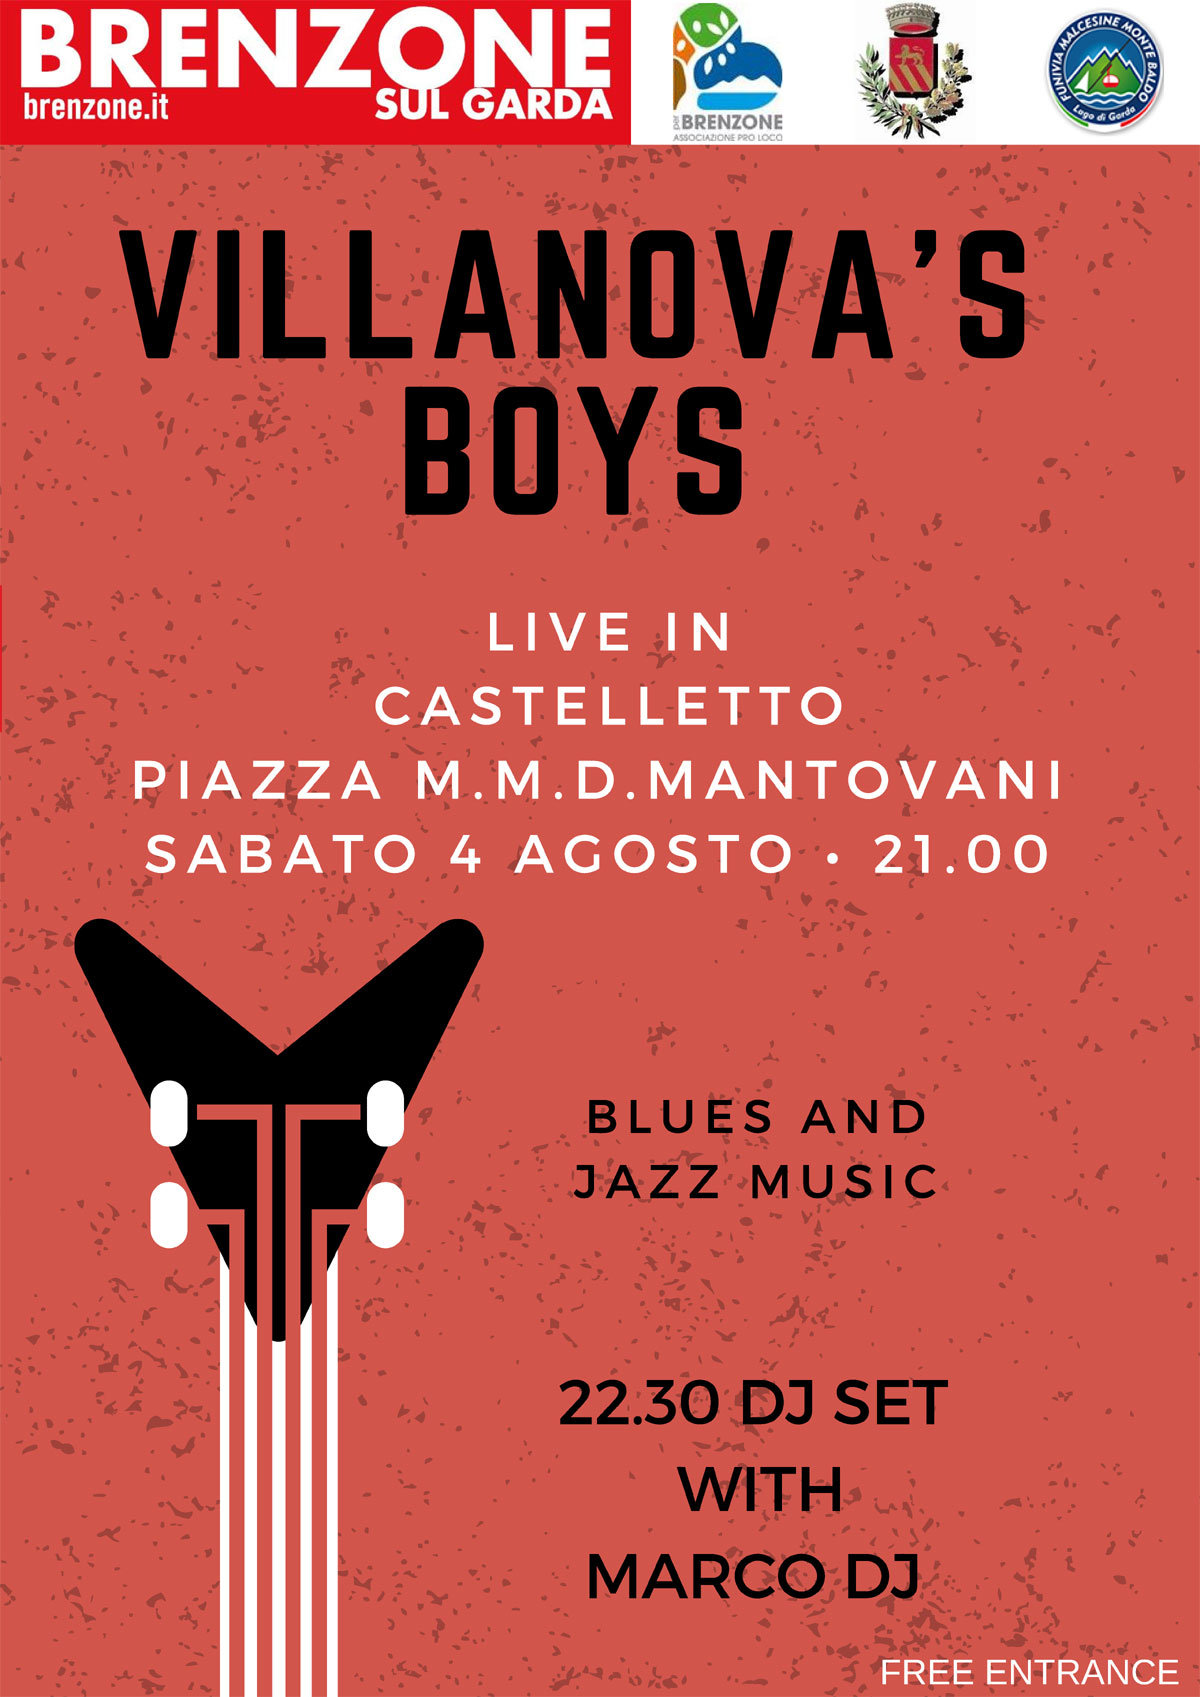 Villanova's boys - Konzert am 04.08.2018